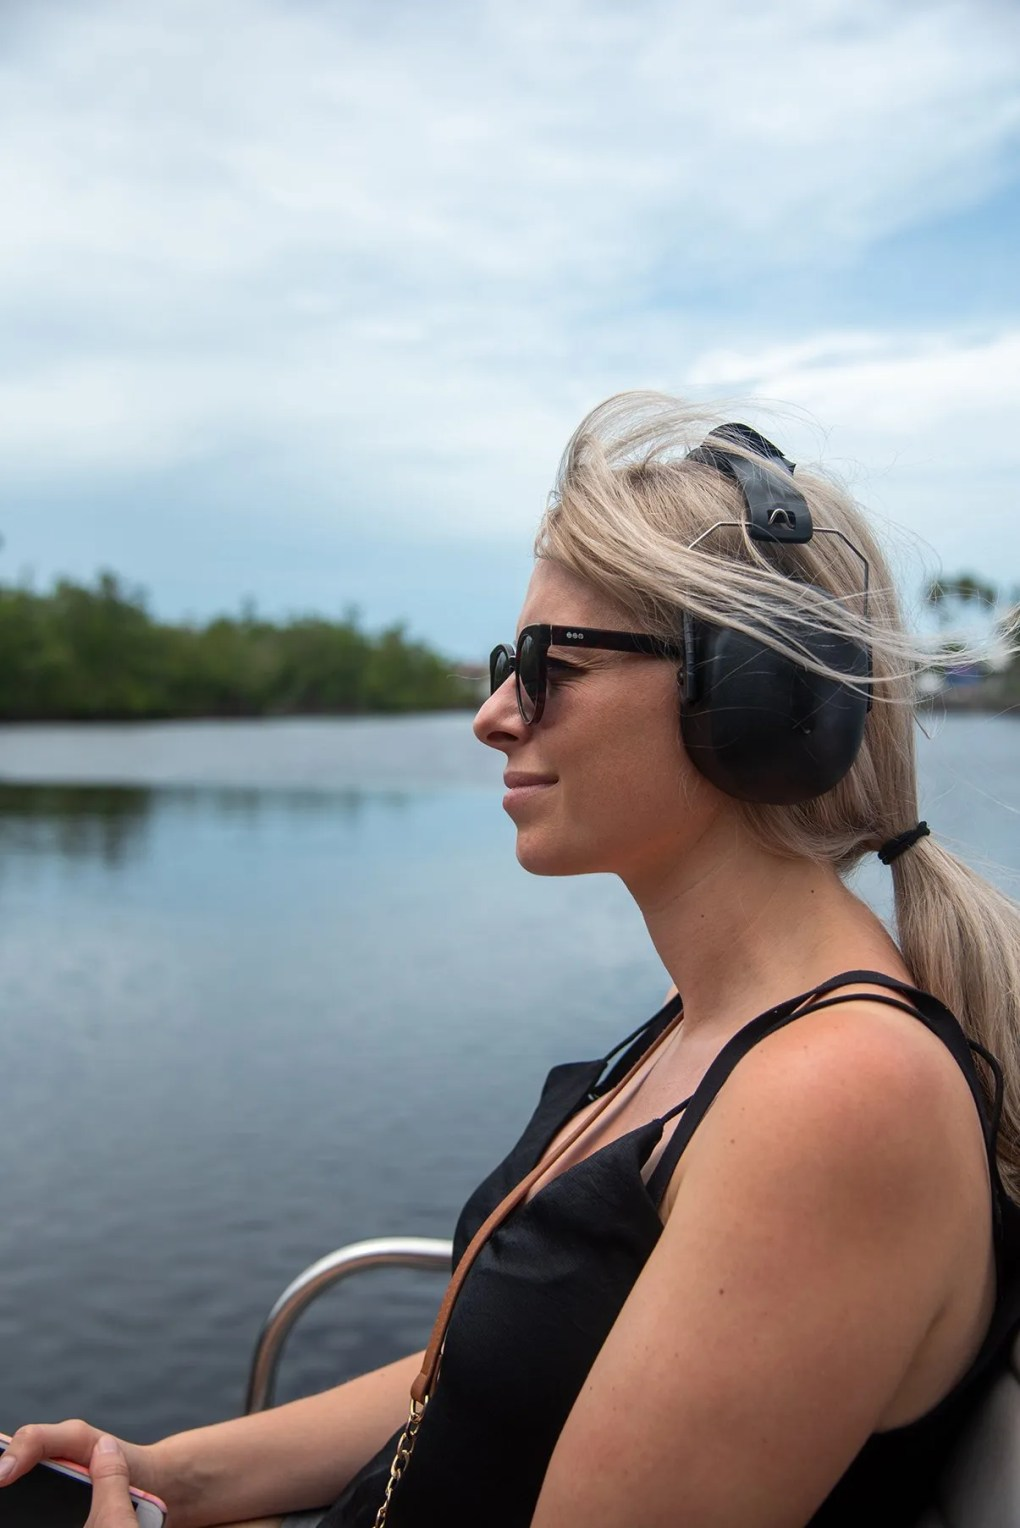 Mijn ervaringen met Airboat tours in de Everglades in Florida